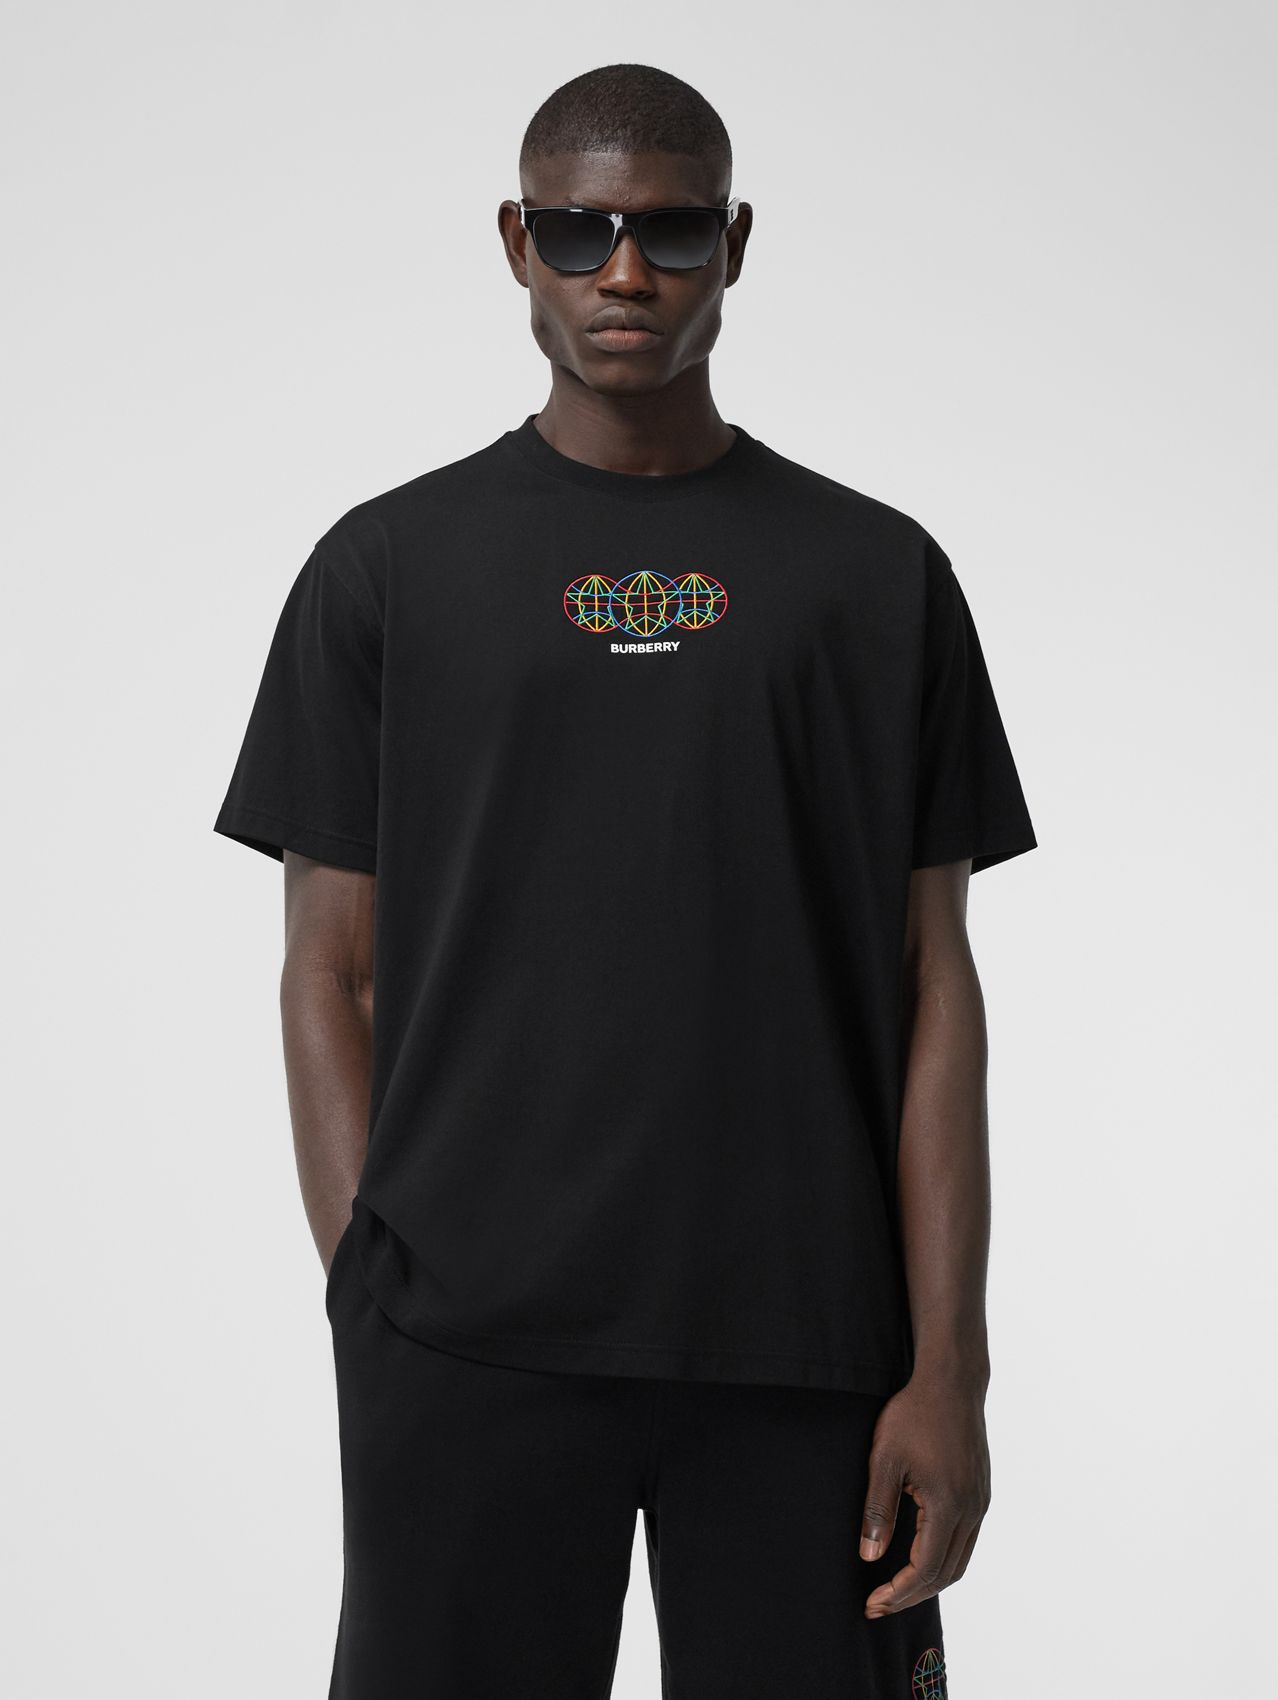 Embroidered Globe Graphic Cotton Oversized T-shirt in Black